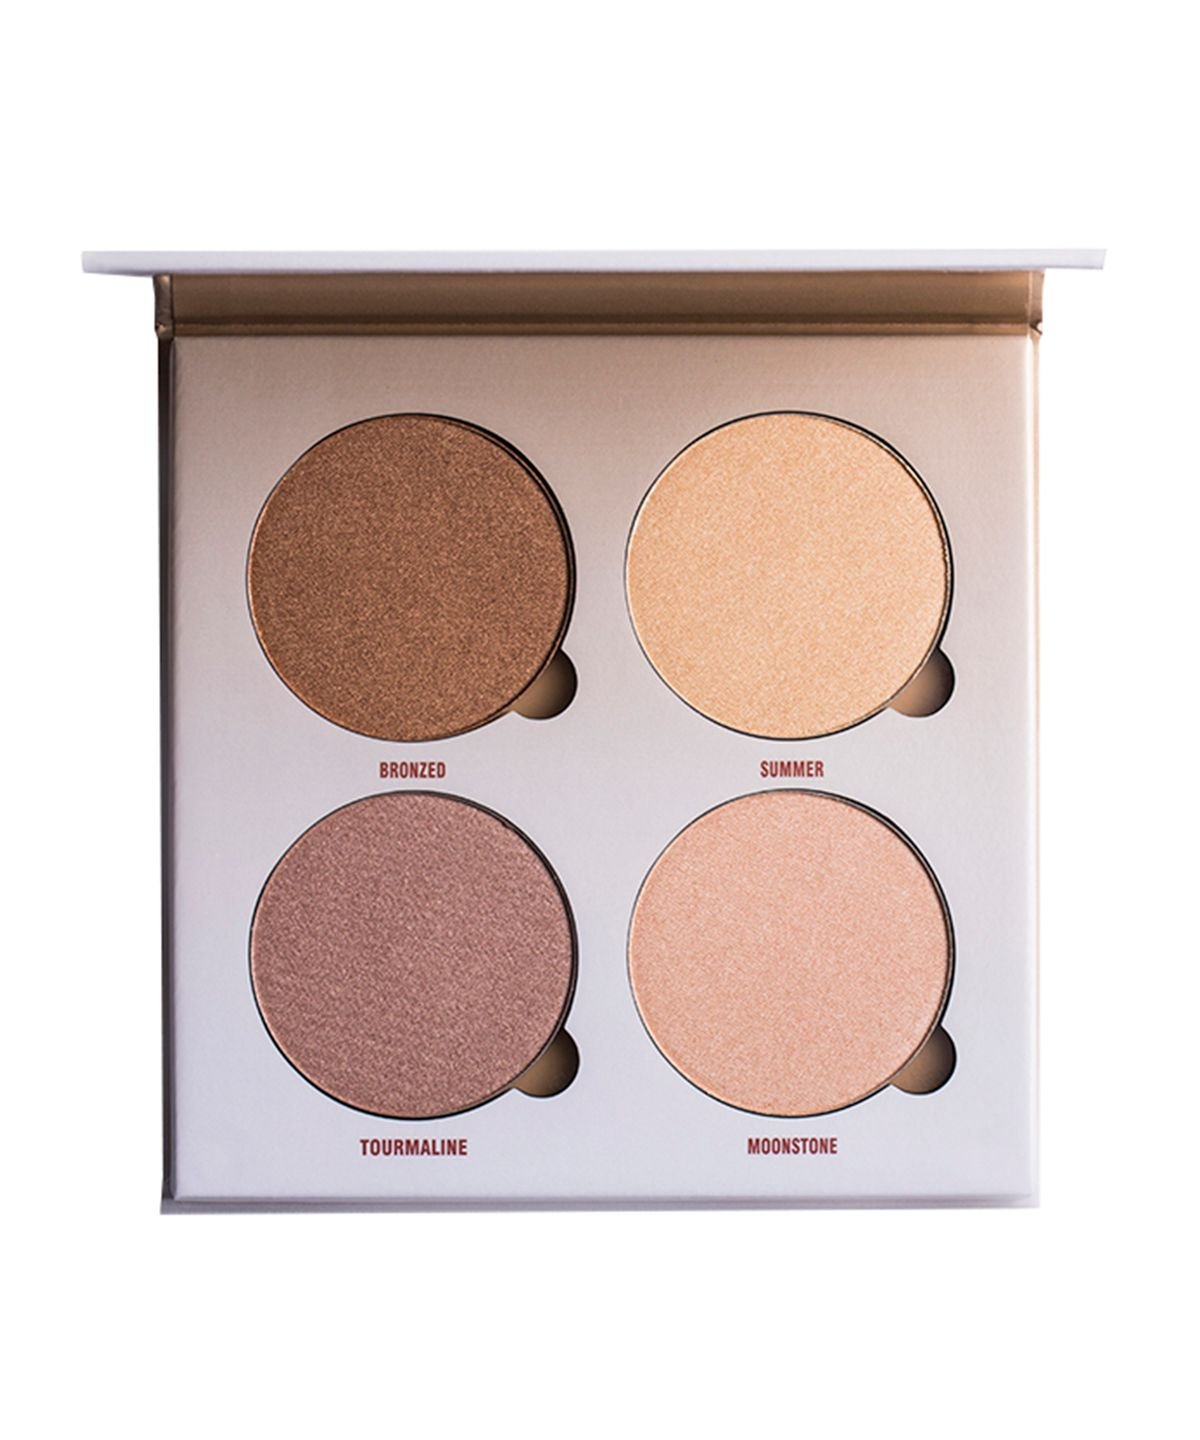 anastasia beverly hills powder contour kit. anastasia beverly hills glow kit - sun dipped powder contour